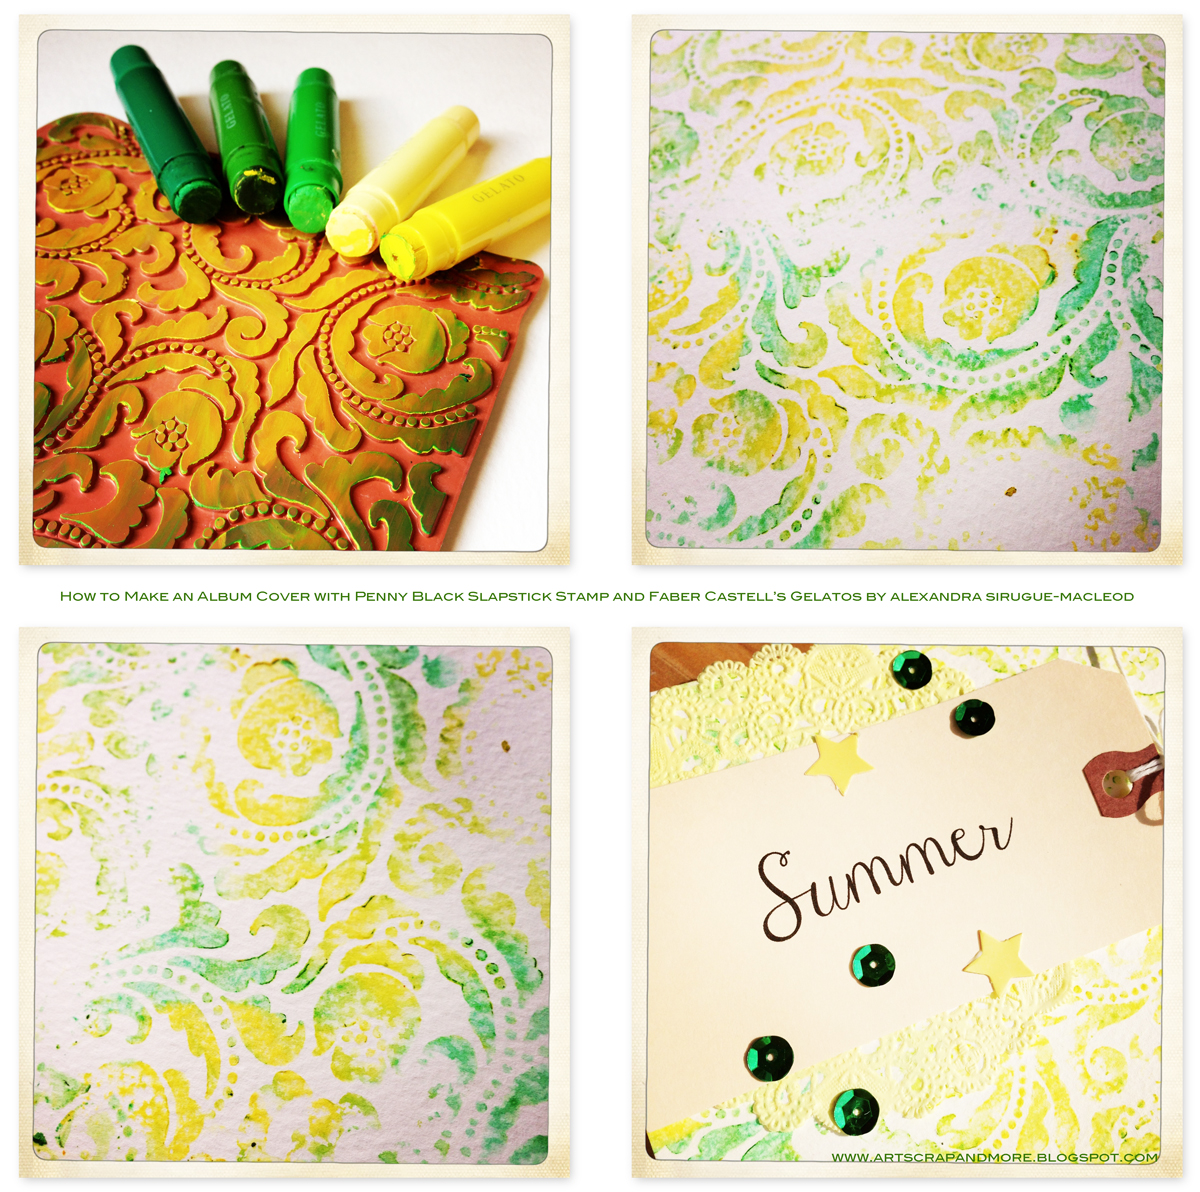 alexandra s sunday scrapbooking how to make an album cover the